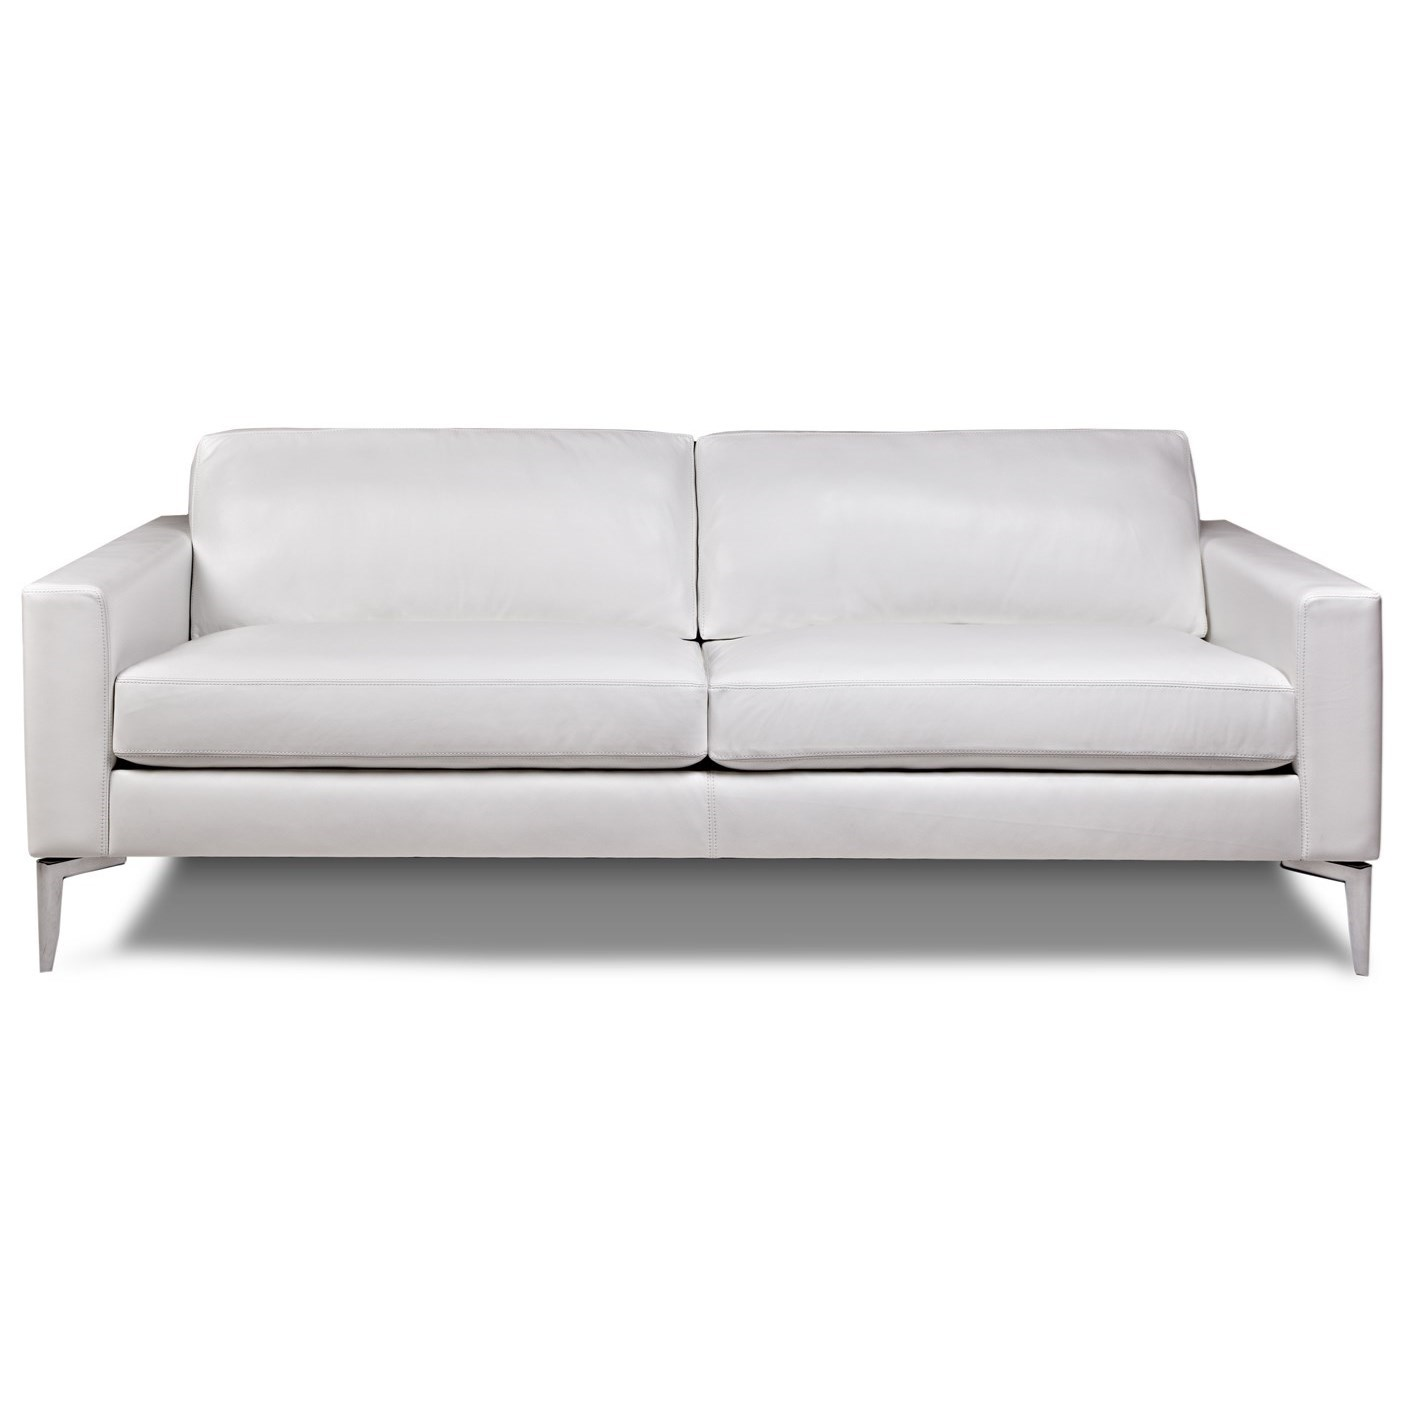 Oliver 2-Seat Sofa by American Leather at Williams & Kay